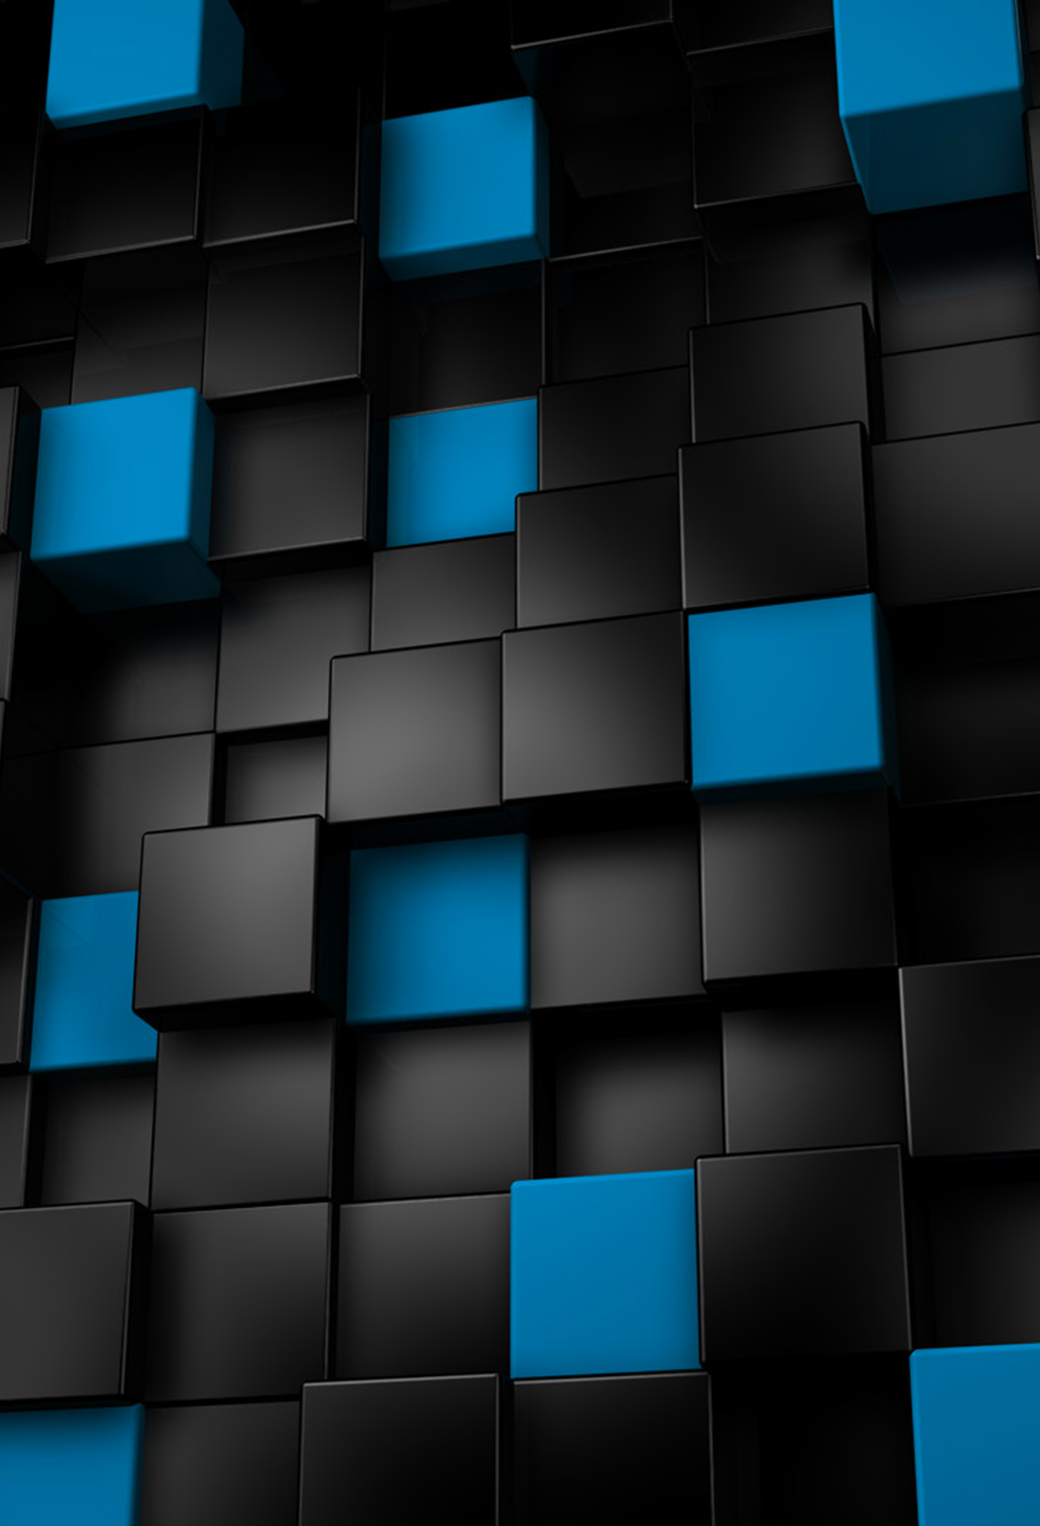 Abstract Blue And Black Cubes 3Wallpapers IPhone Parallax